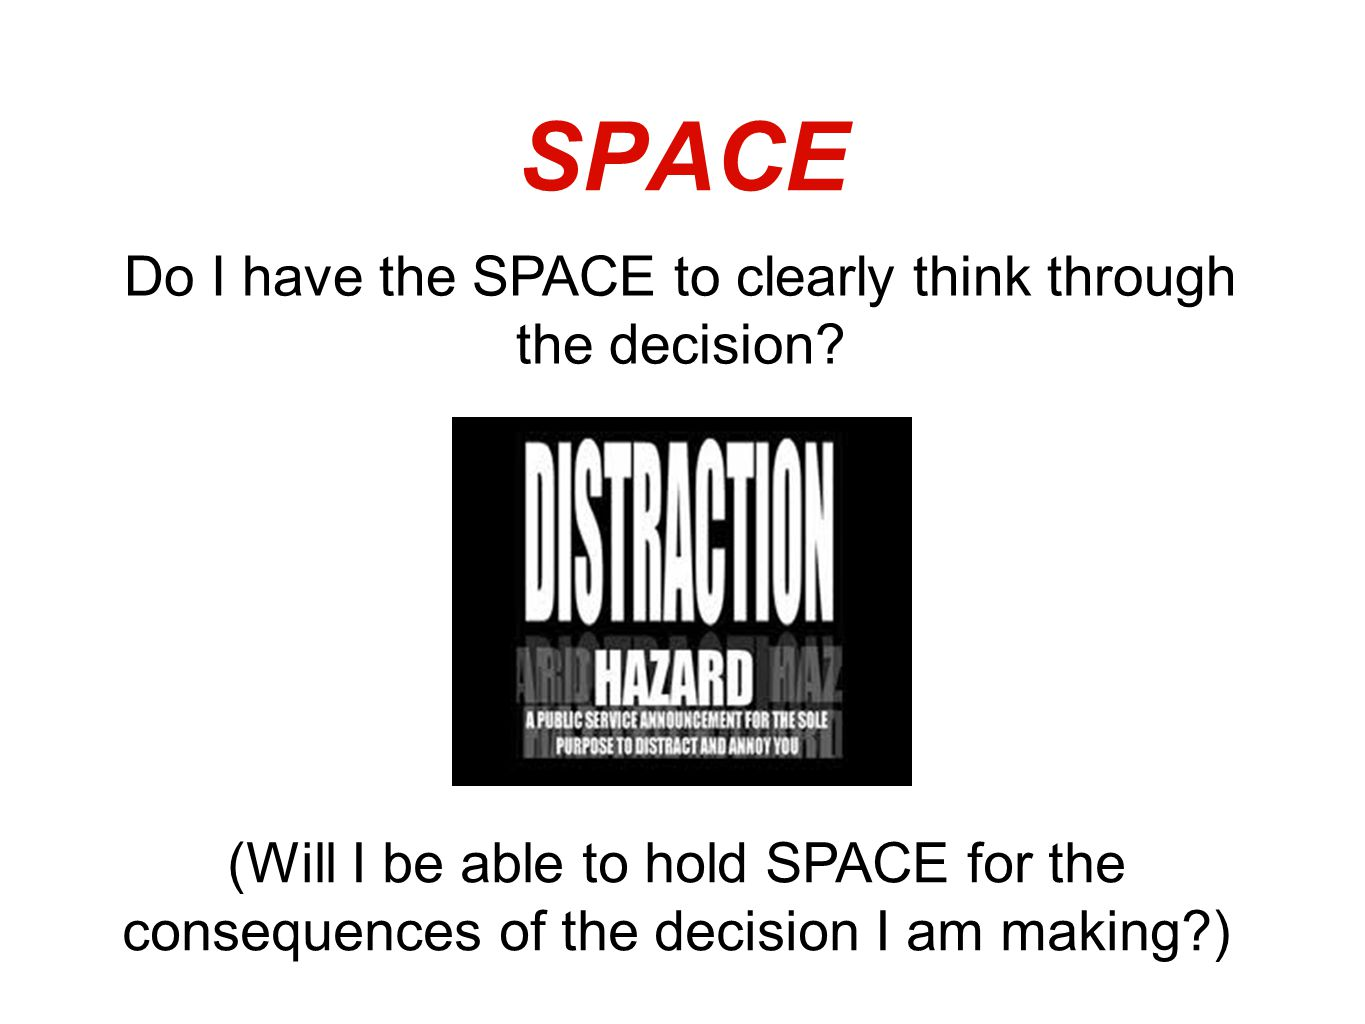 SPACE Do I have the SPACE to clearly think through the decision.